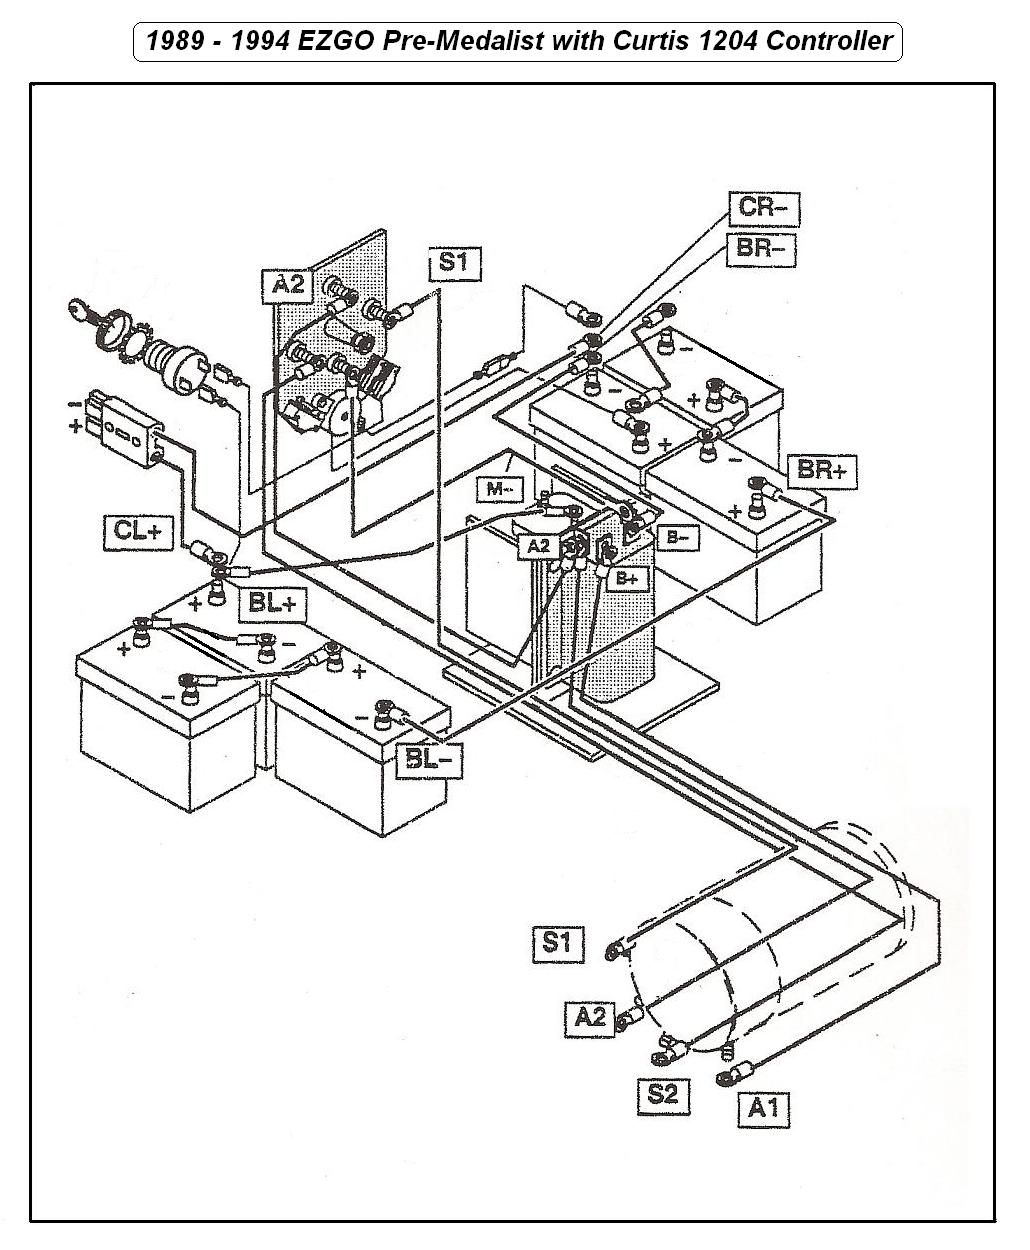 A89_94EZ_Wiring ezgo wiring diagram ezgo fuel pump \u2022 wiring diagrams j squared co ezgo golf cart wiring diagram at highcare.asia